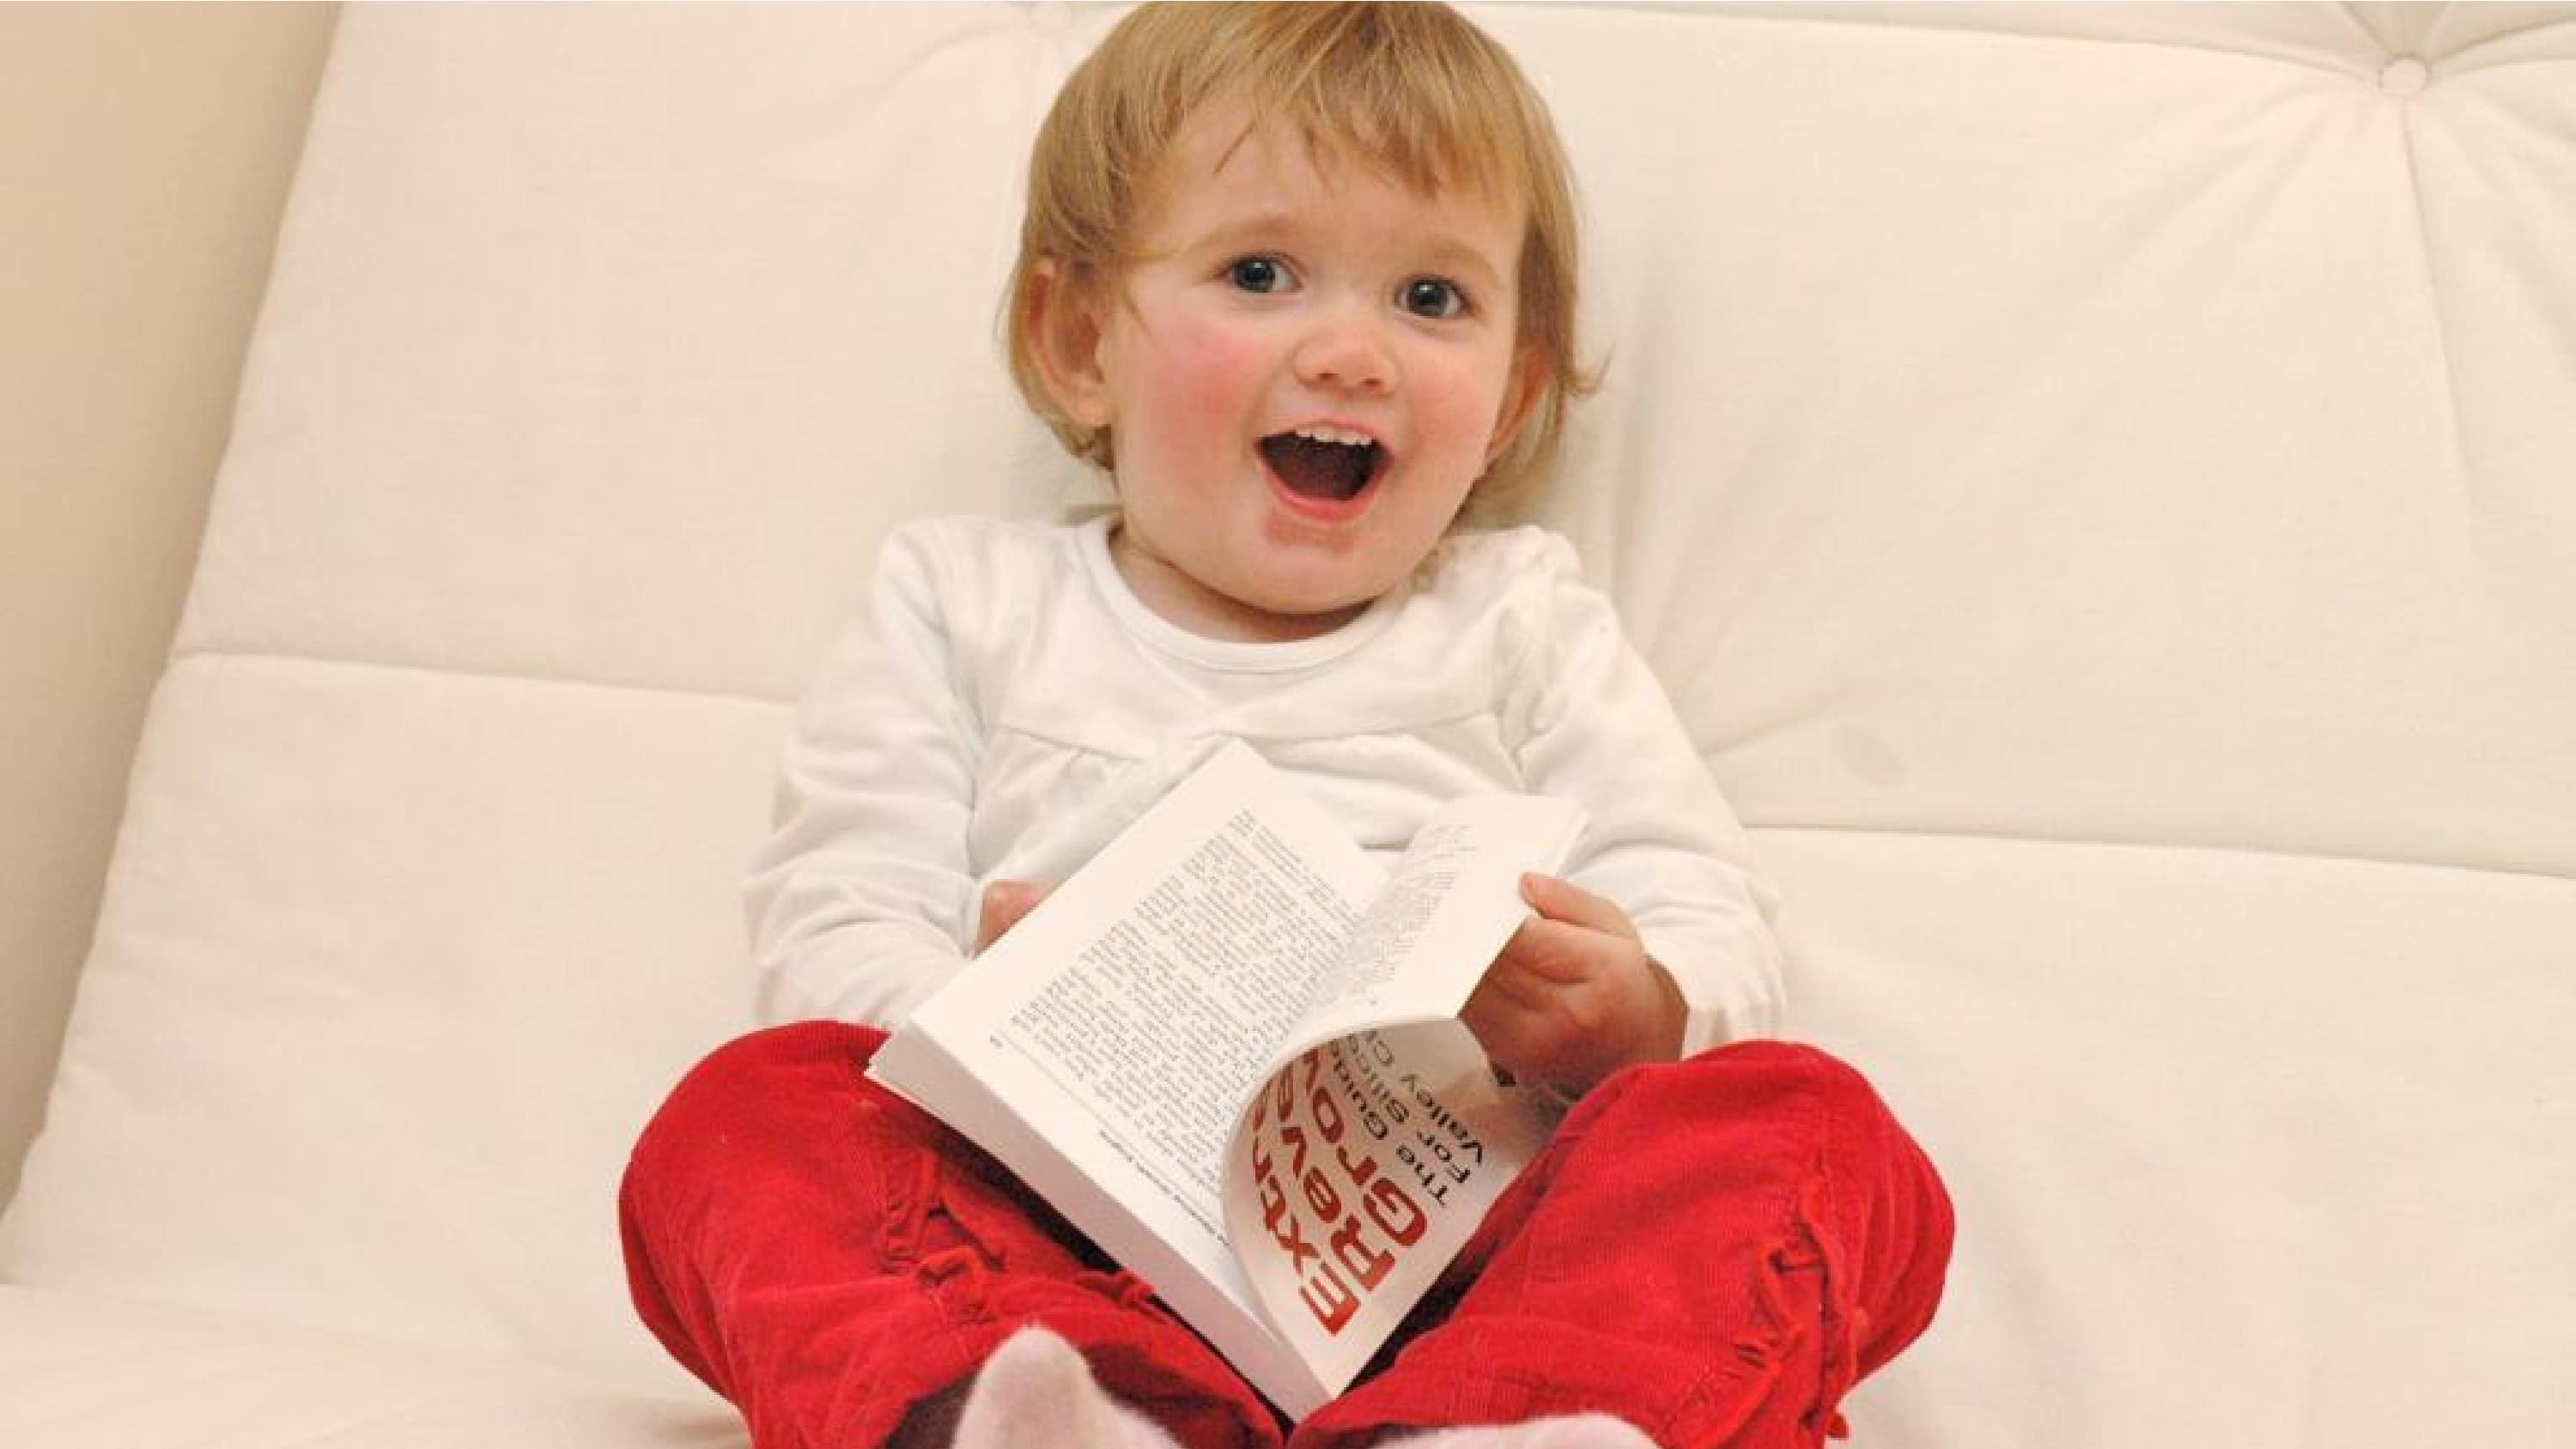 A photo of a child reading a book.